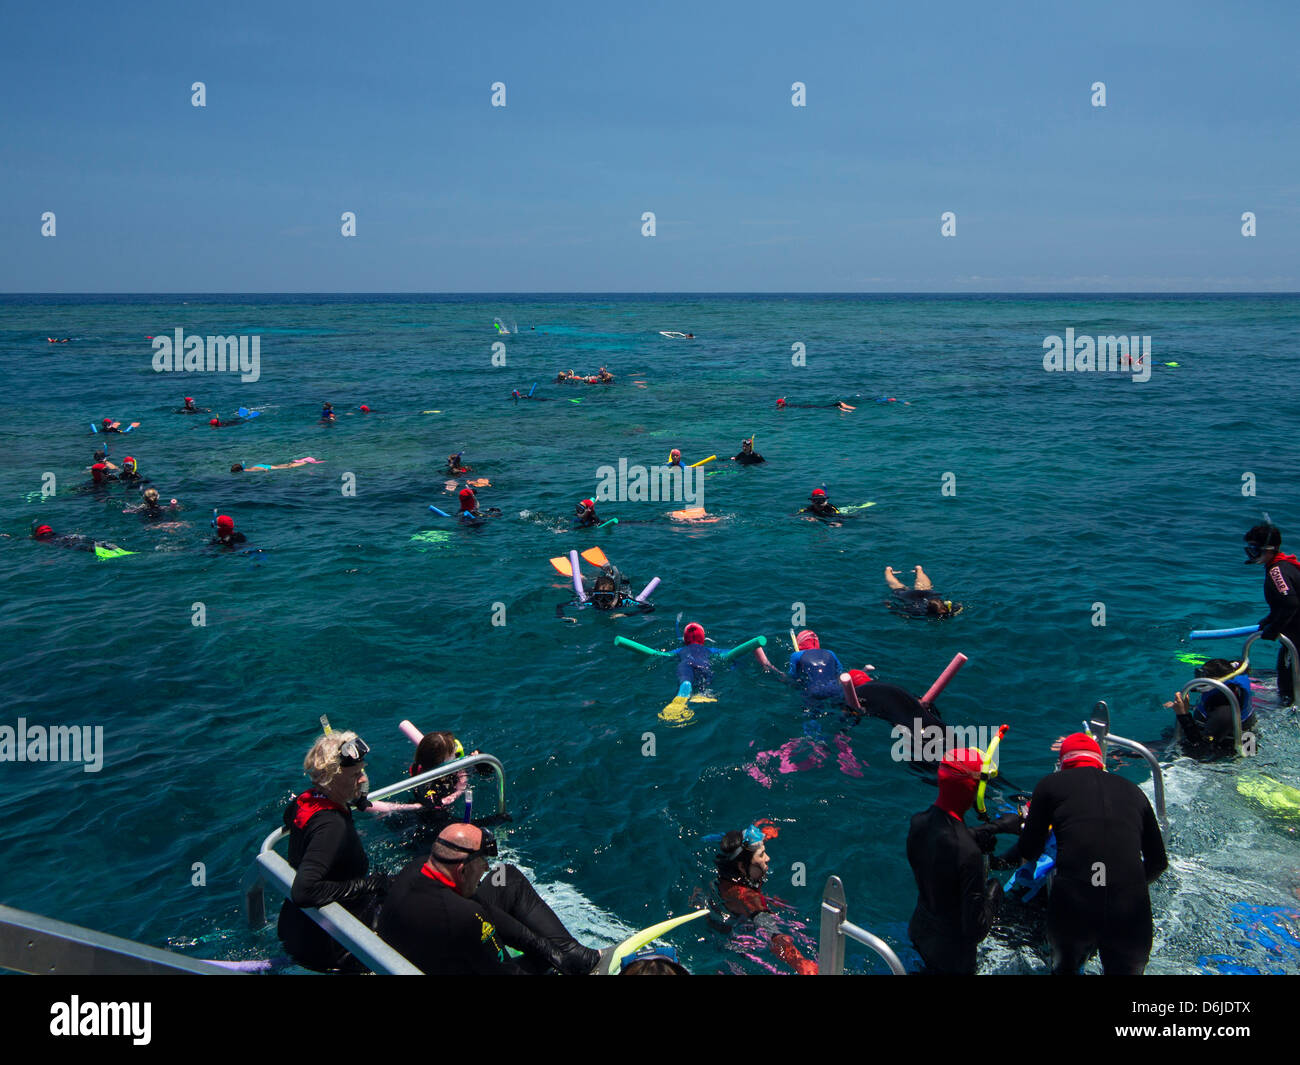 People snorkelling on Outer Great Barrier Reef near Cairns, North Queensland, Australia, Pacific - Stock Image